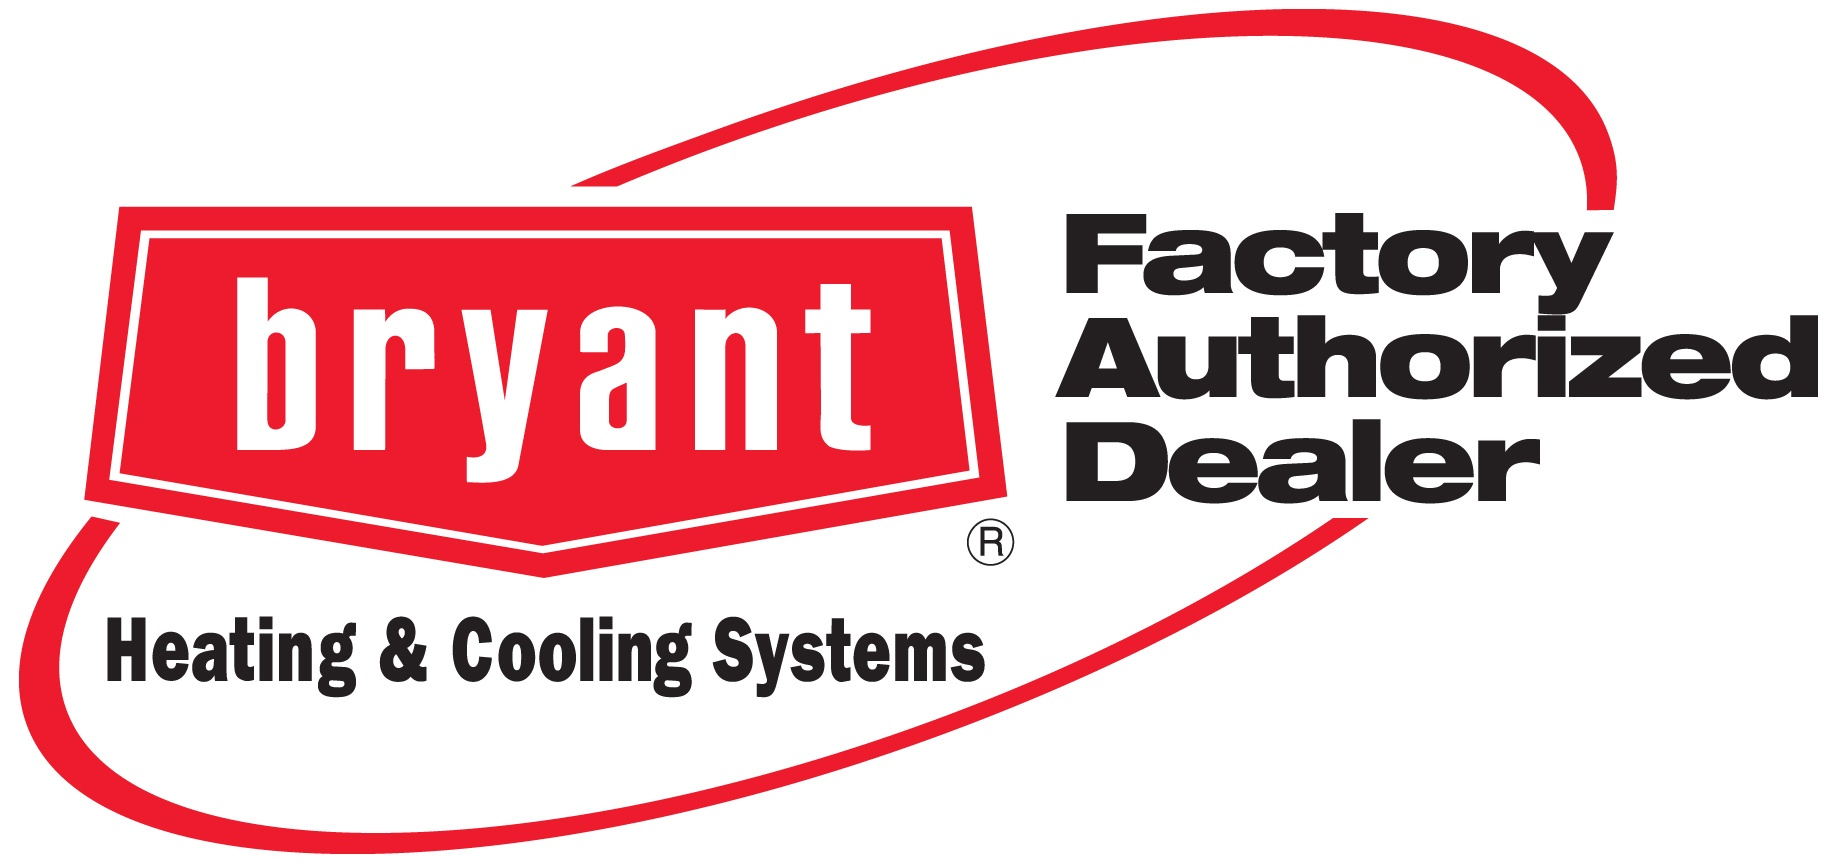 Bryant Factory Authorized Dealer